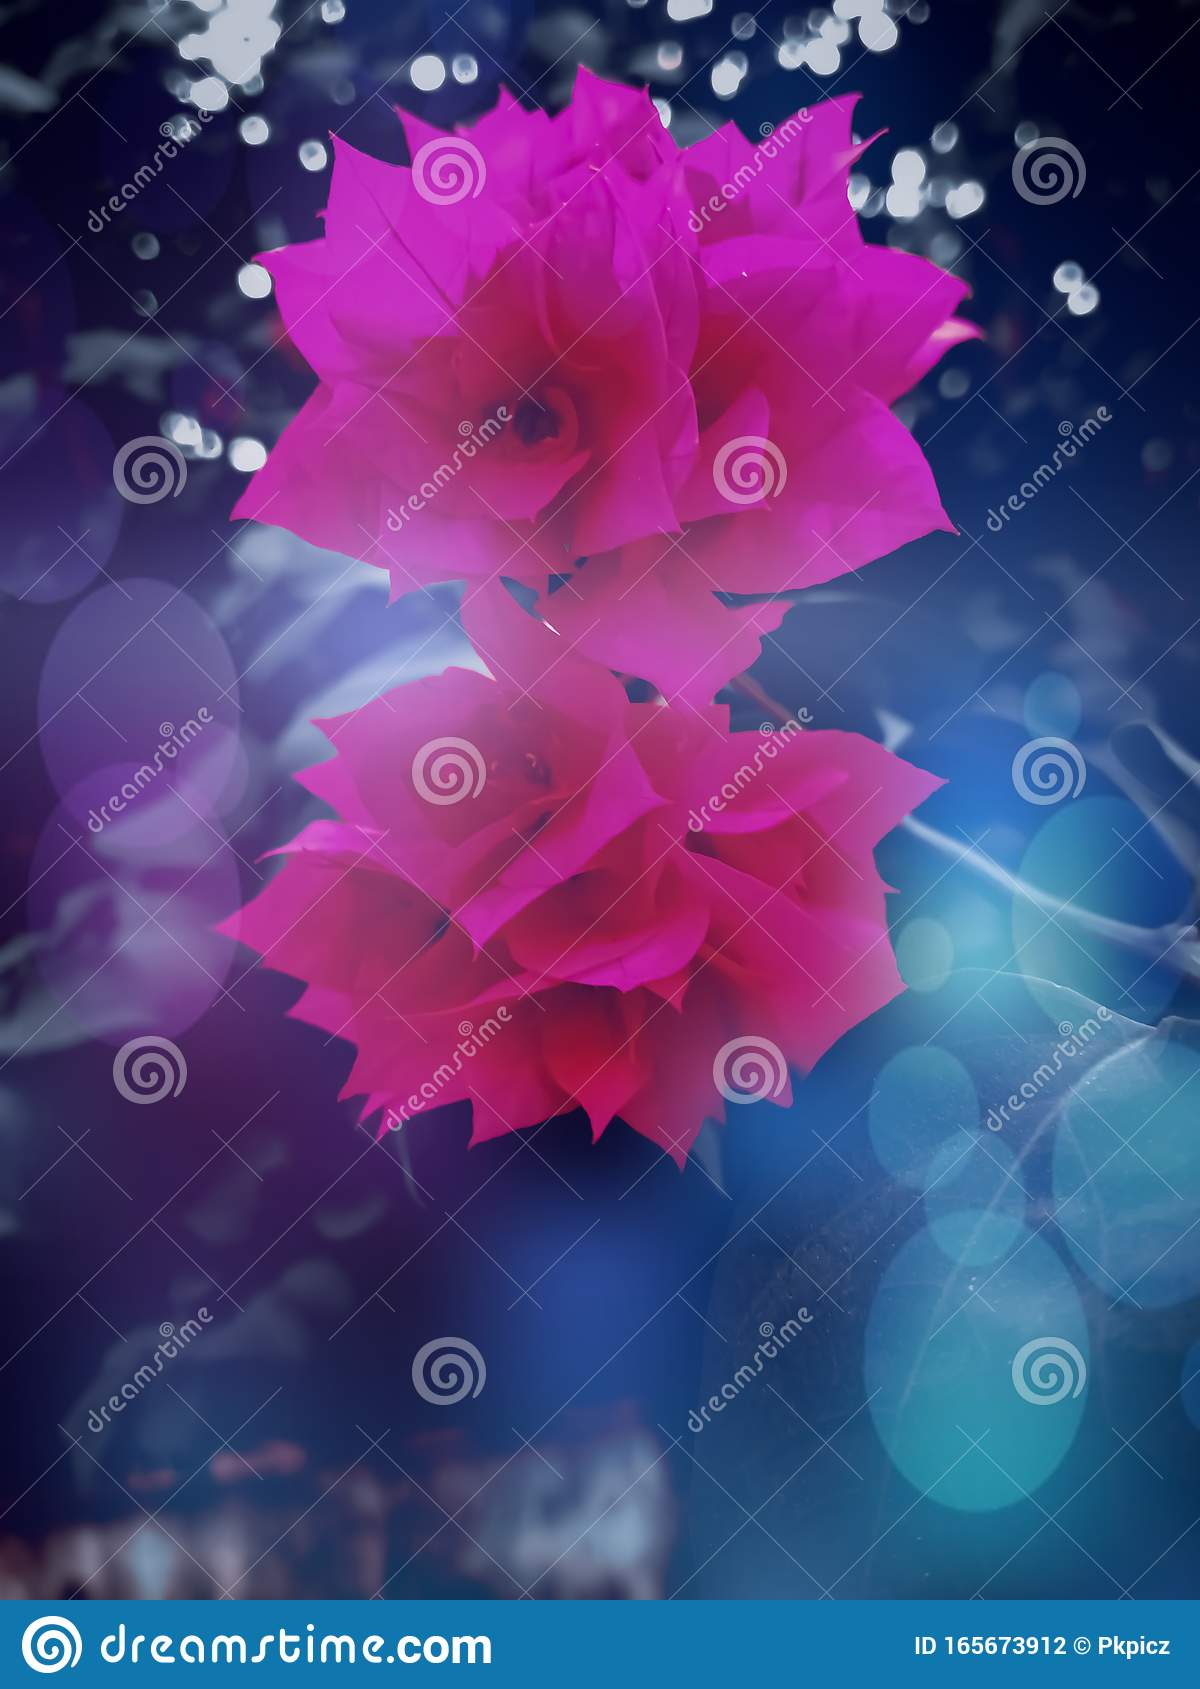 Two Pink Beautiful Flowers For Wallpaper And Background Stock Photo Image Of Beautiful Light 165673912